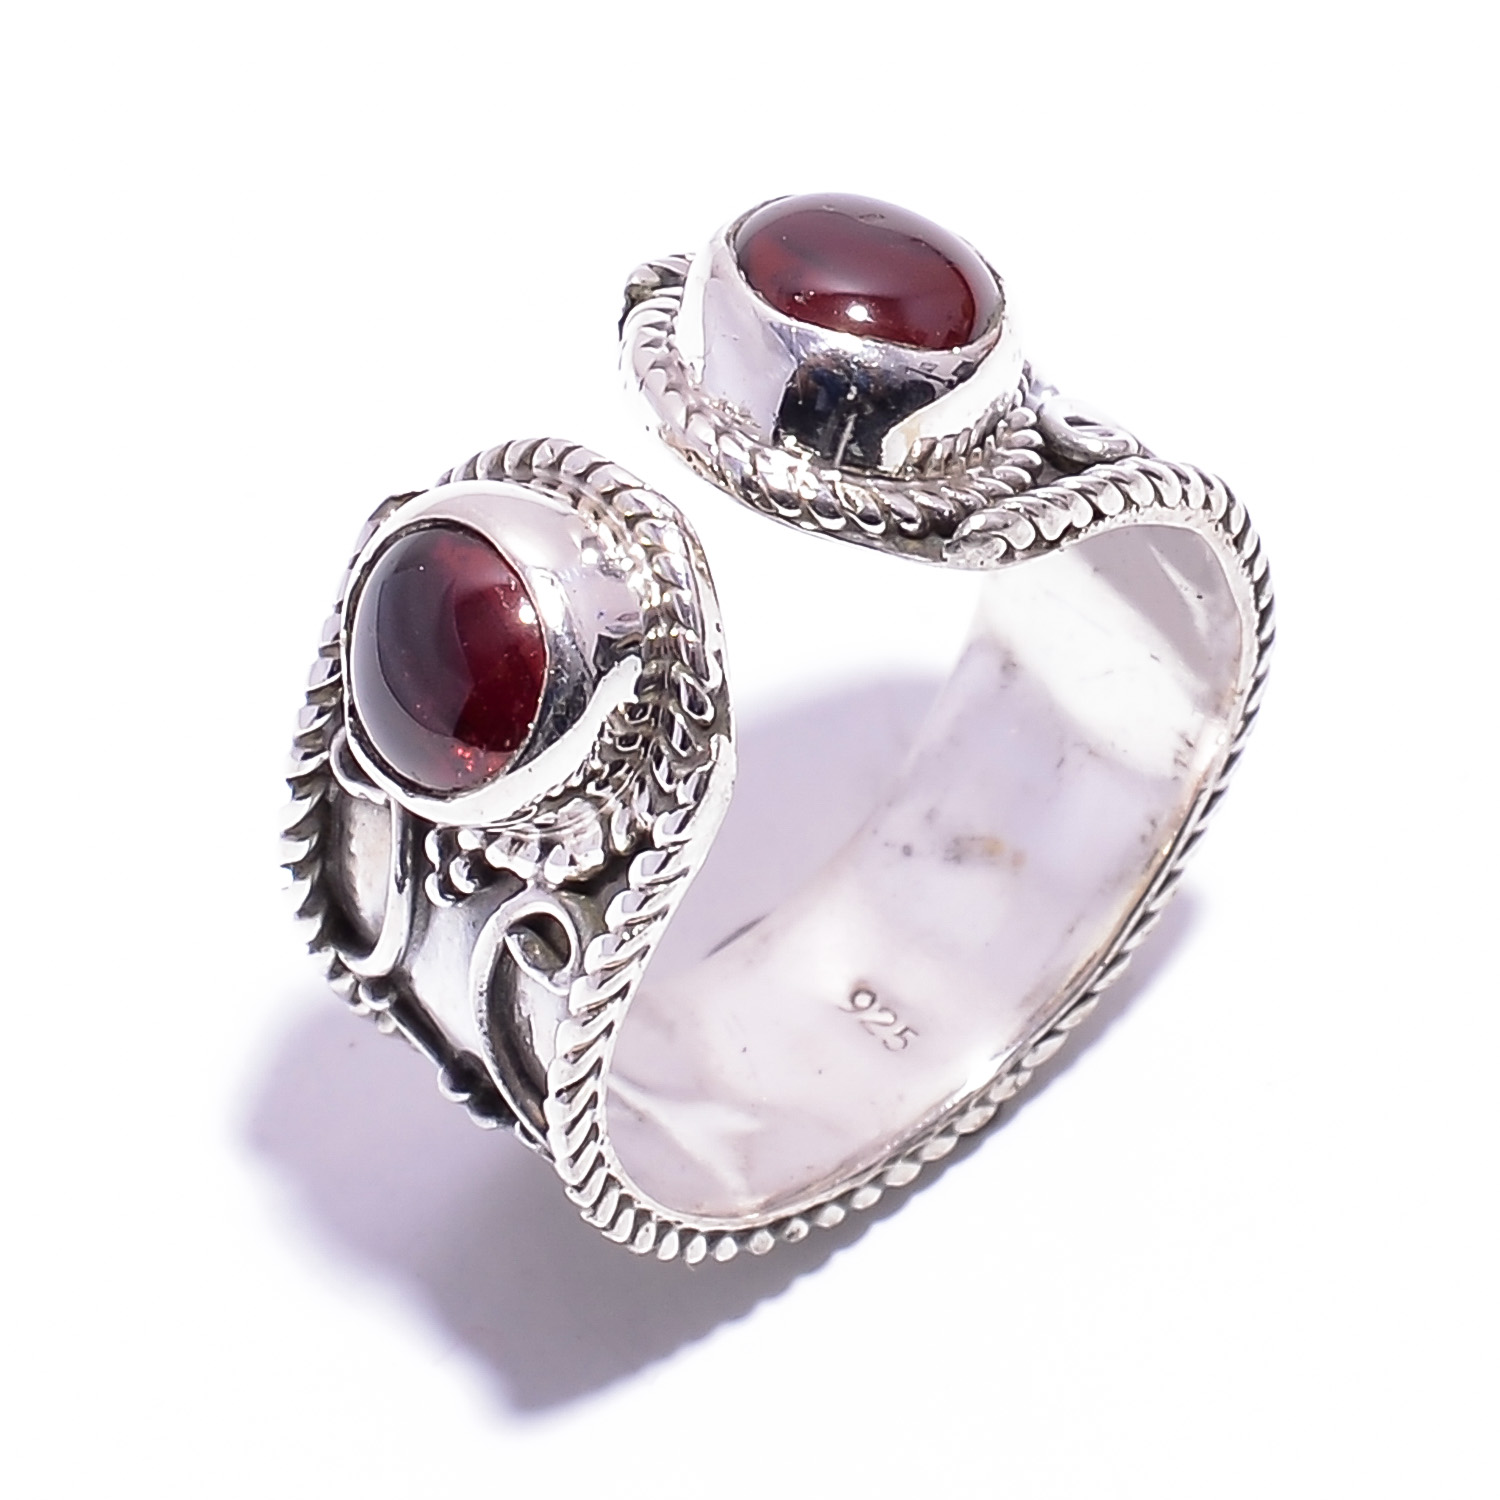 Garnet Gemstone 925 Sterling Silver Adjustable Ring